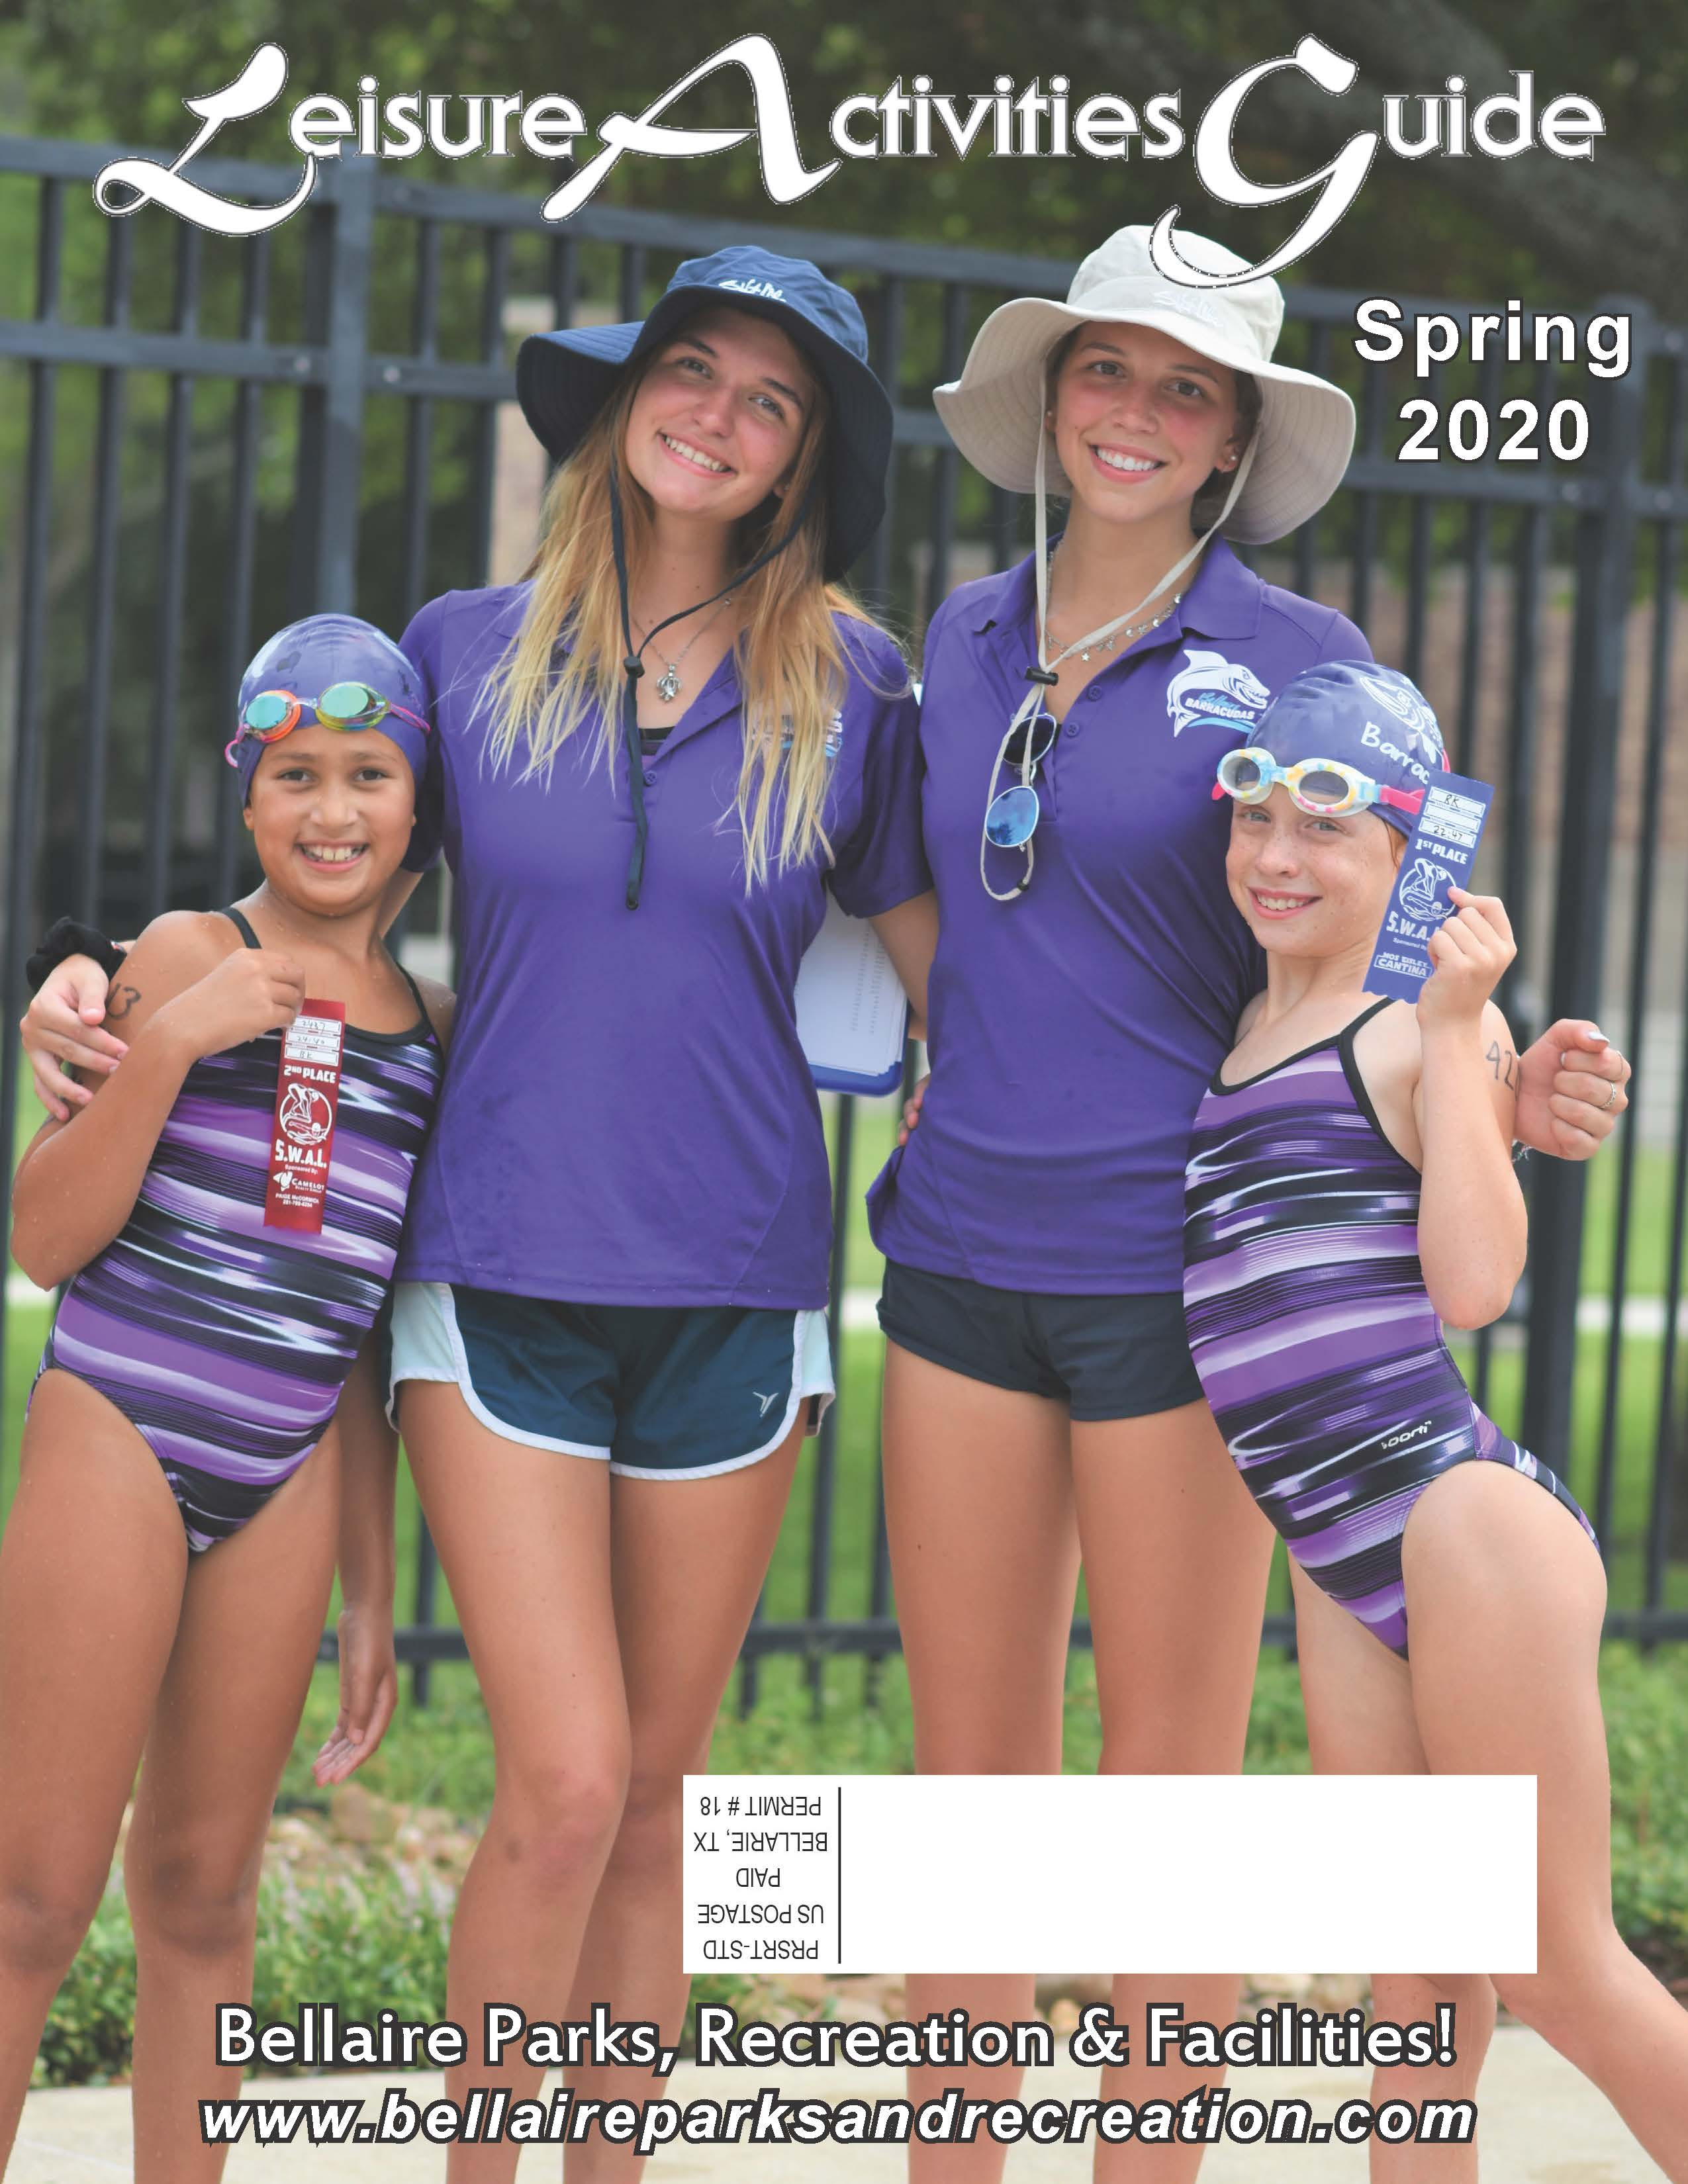 Spring 2020 Leisure Guide Cover